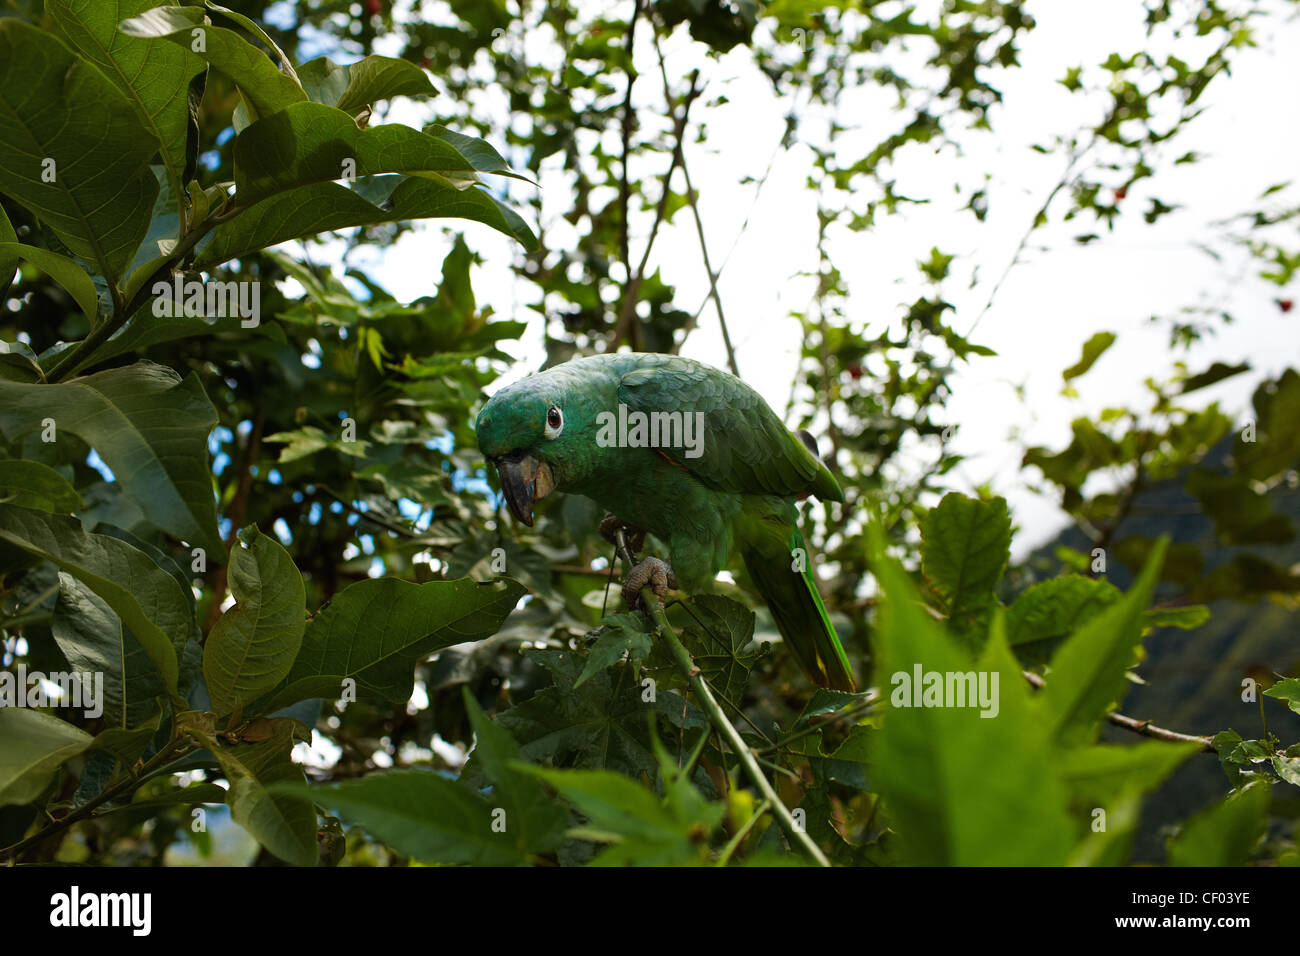 Green Parrot sits on the branches of trees, look into the camera - Stock Image